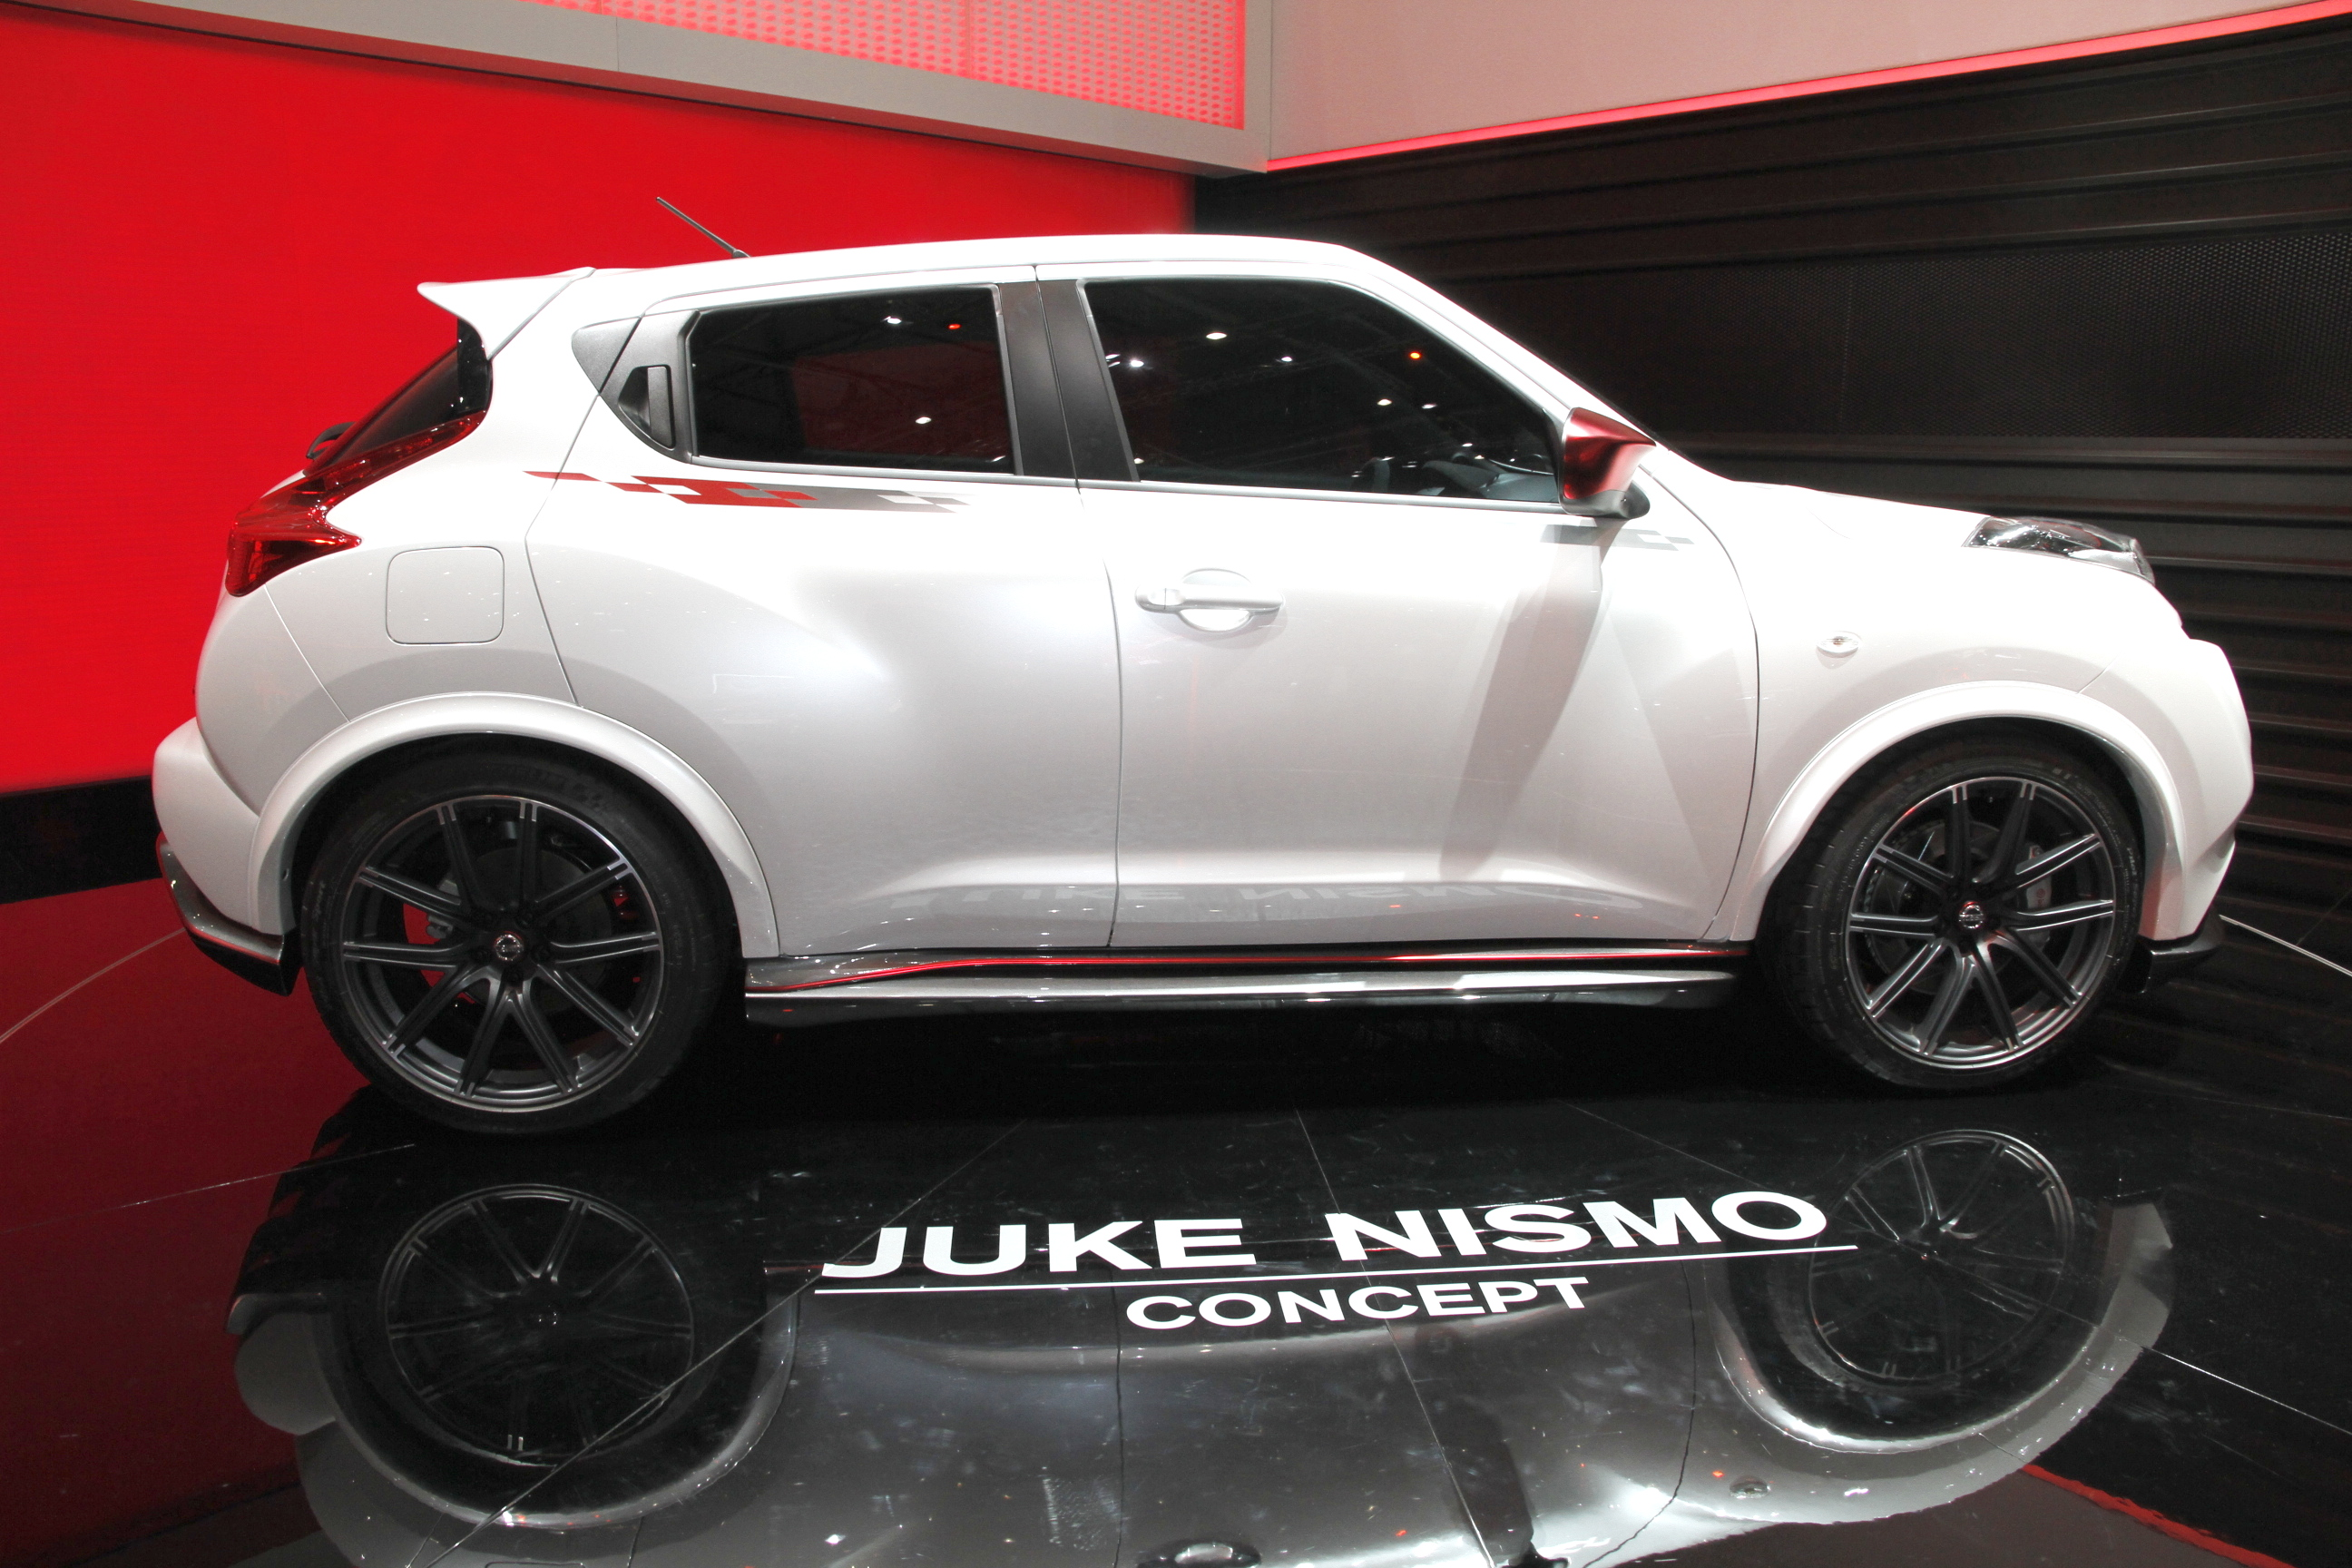 salon de gen ve 2012 nissan juke nismo concept dark. Black Bedroom Furniture Sets. Home Design Ideas